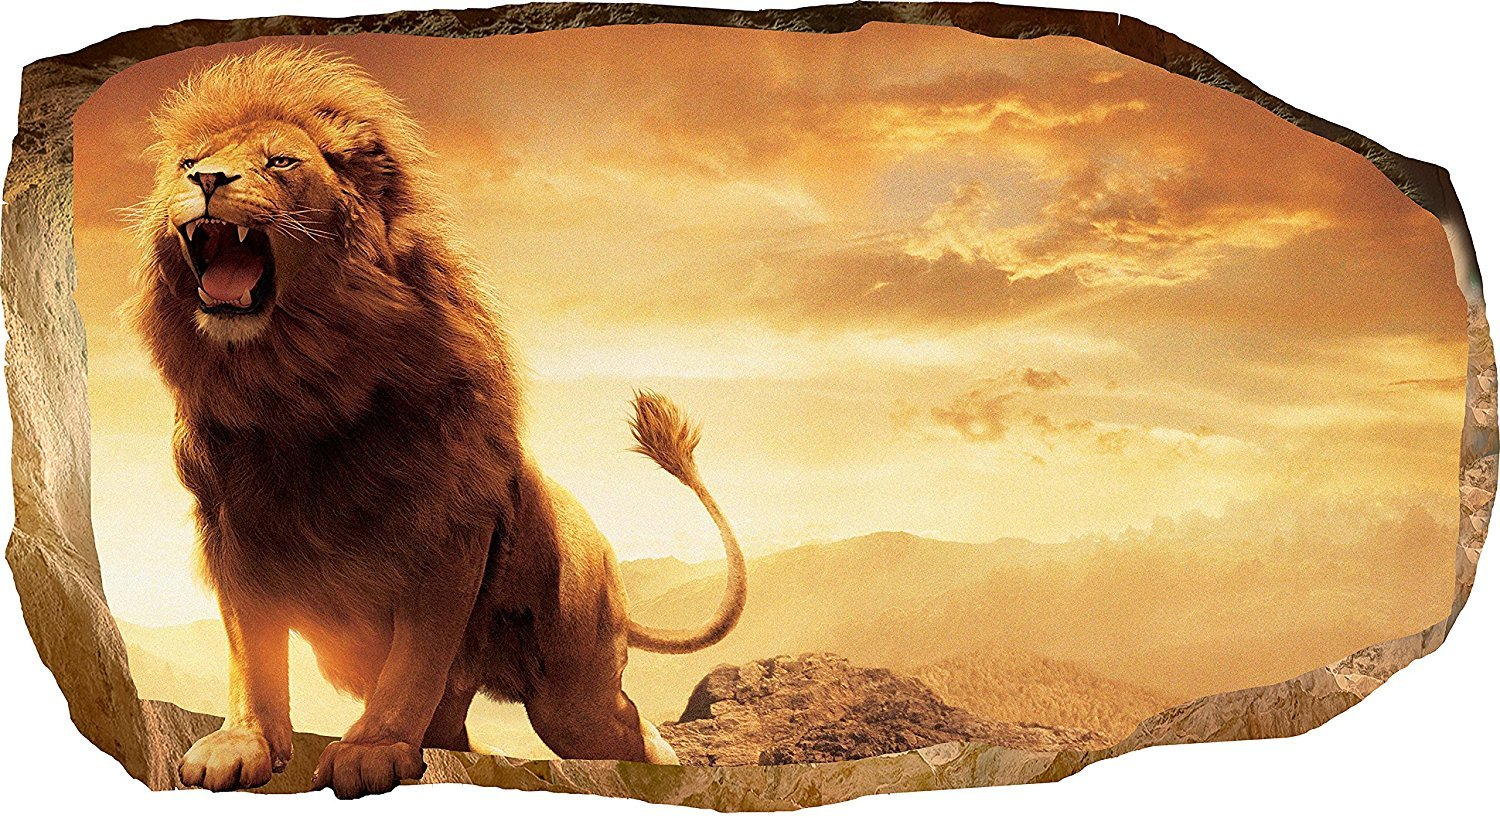 Powerful, Captivating and Majestic Lion Wall Art - Animal Wall Decor